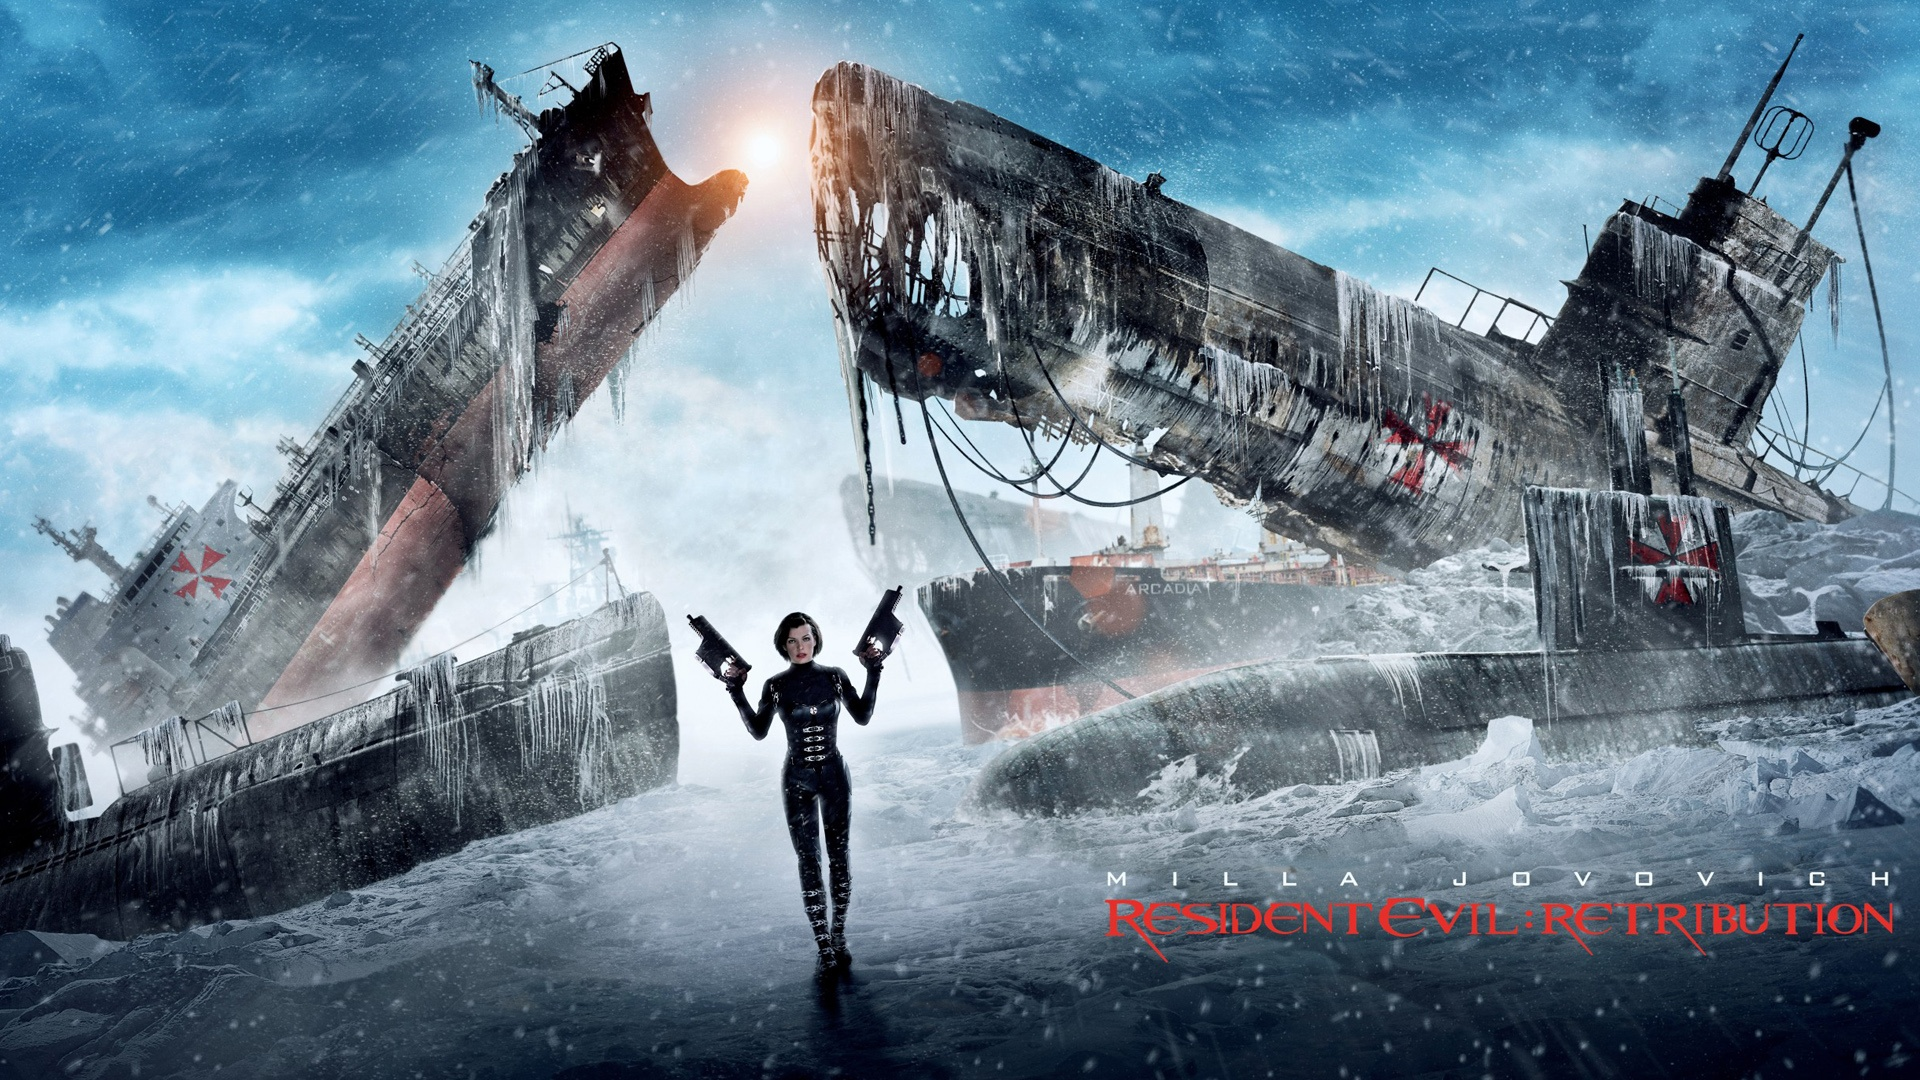 resident evil retribution hd wallpapers - all hd wallpapers